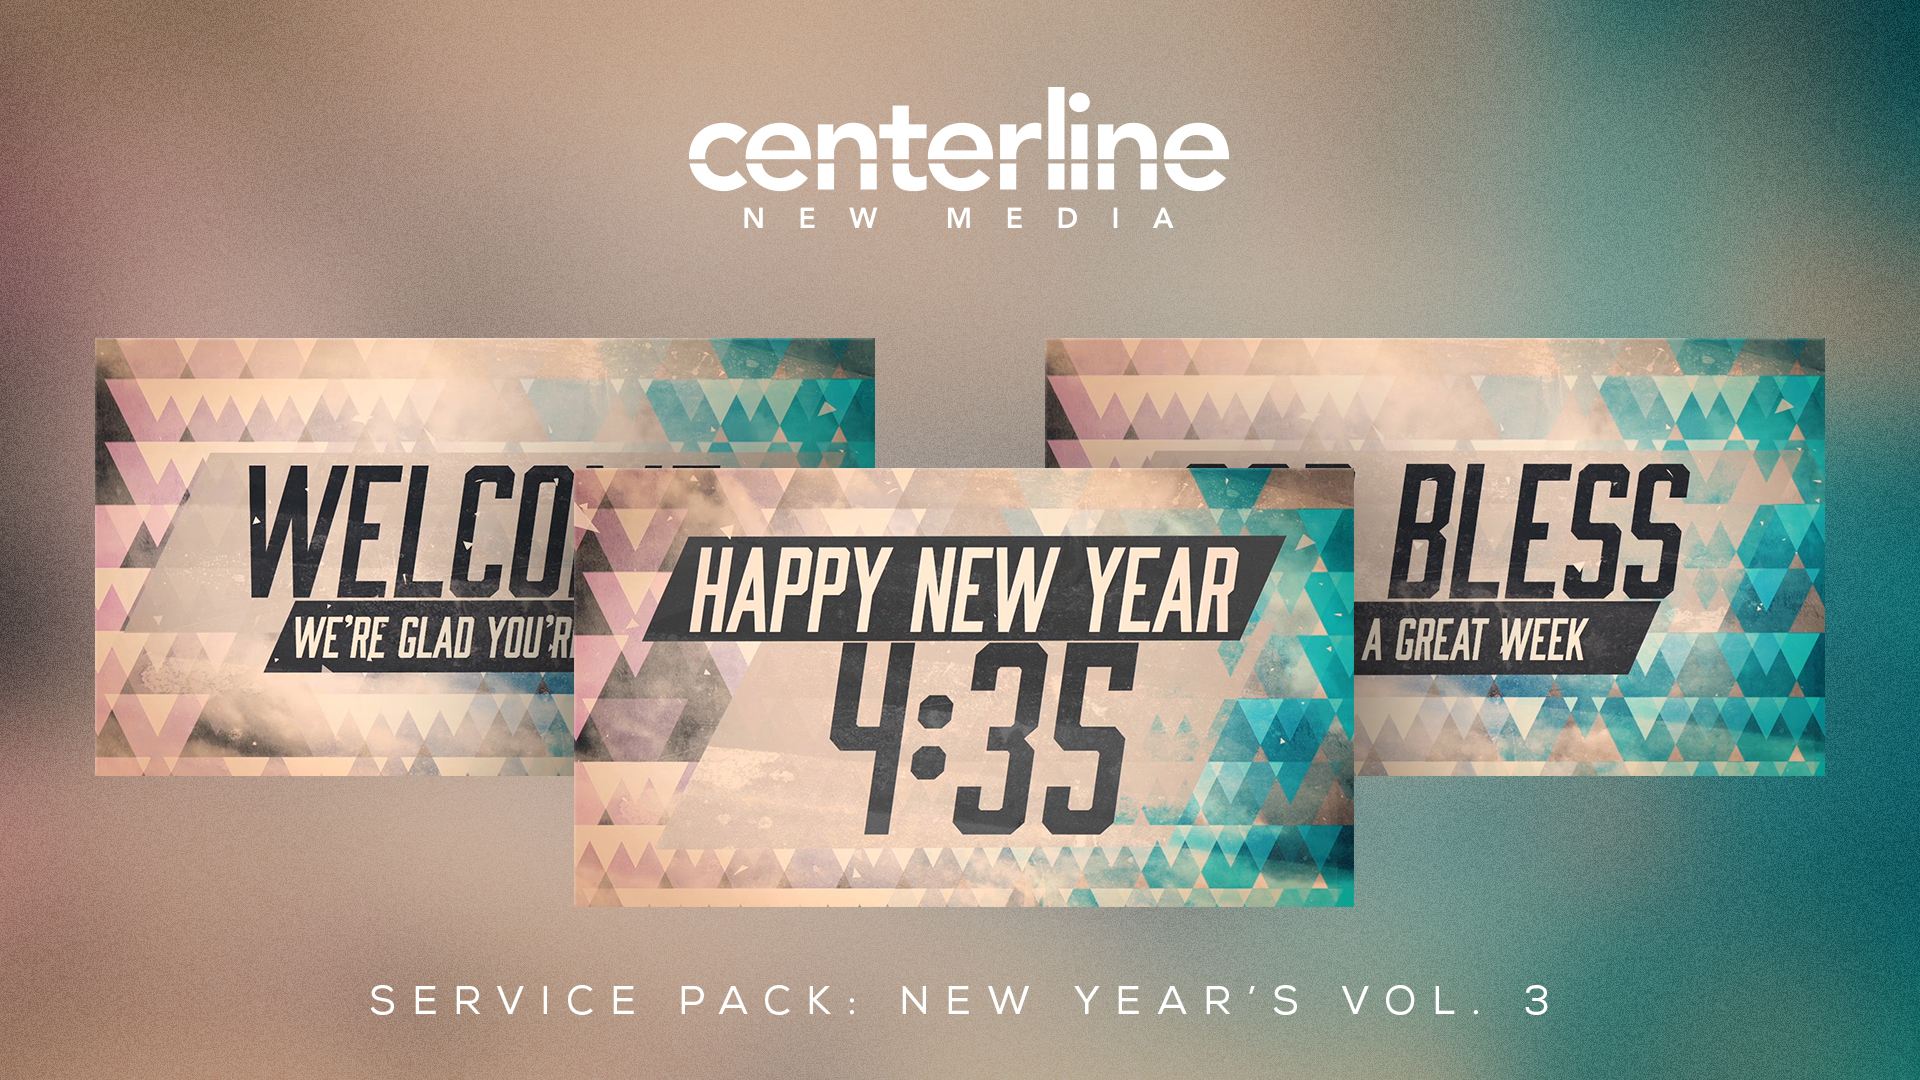 SERVICE PACK: NEW YEARS VOL. 3